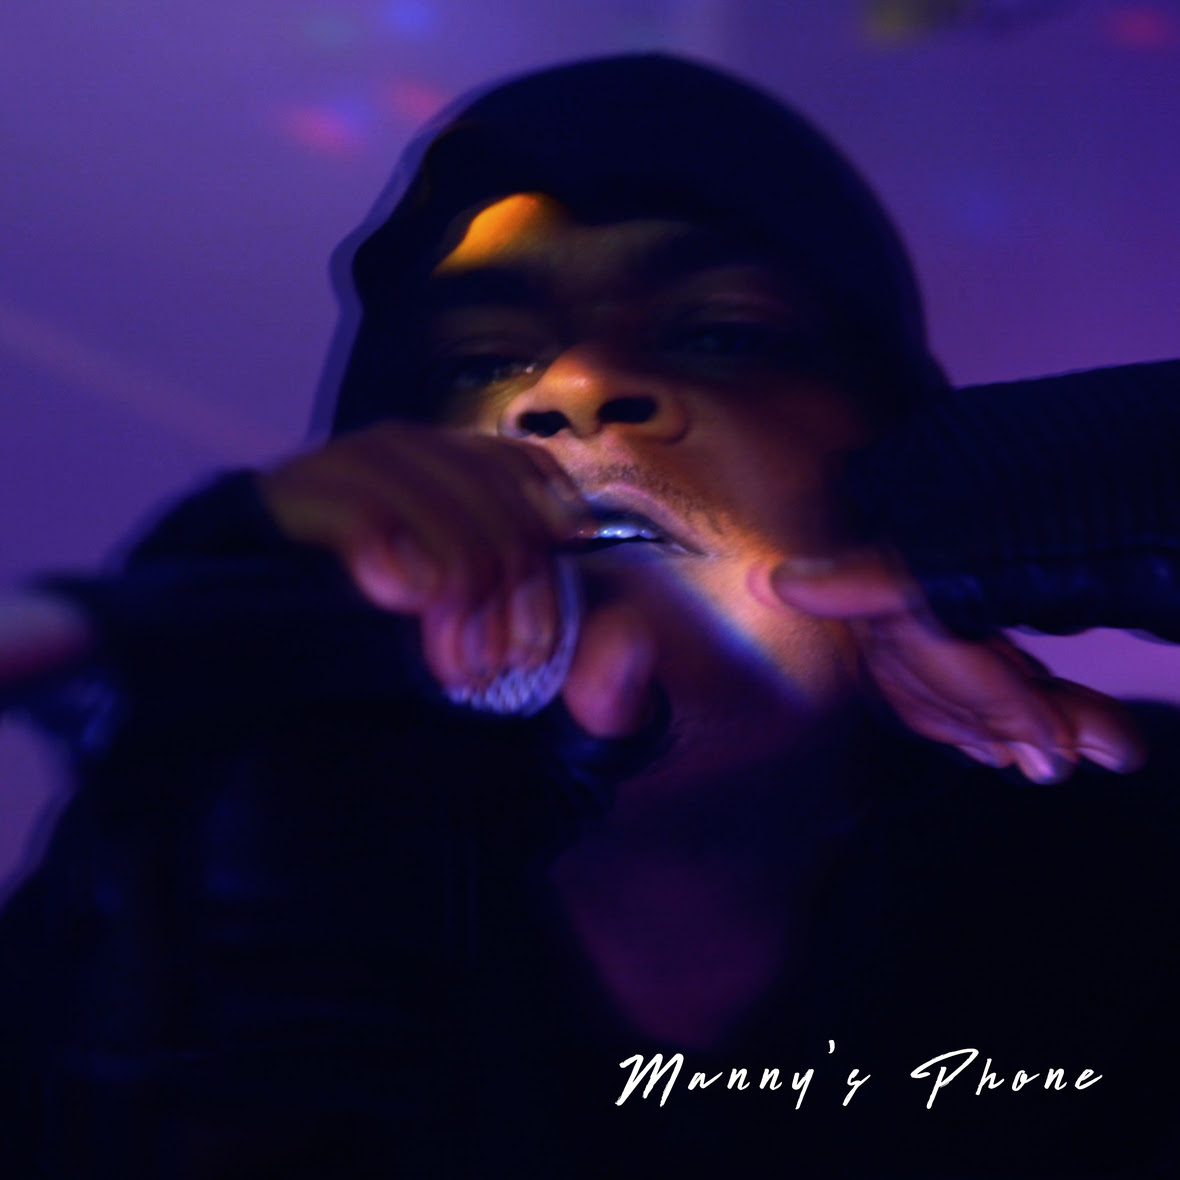 mannys-phone-single-cover-final